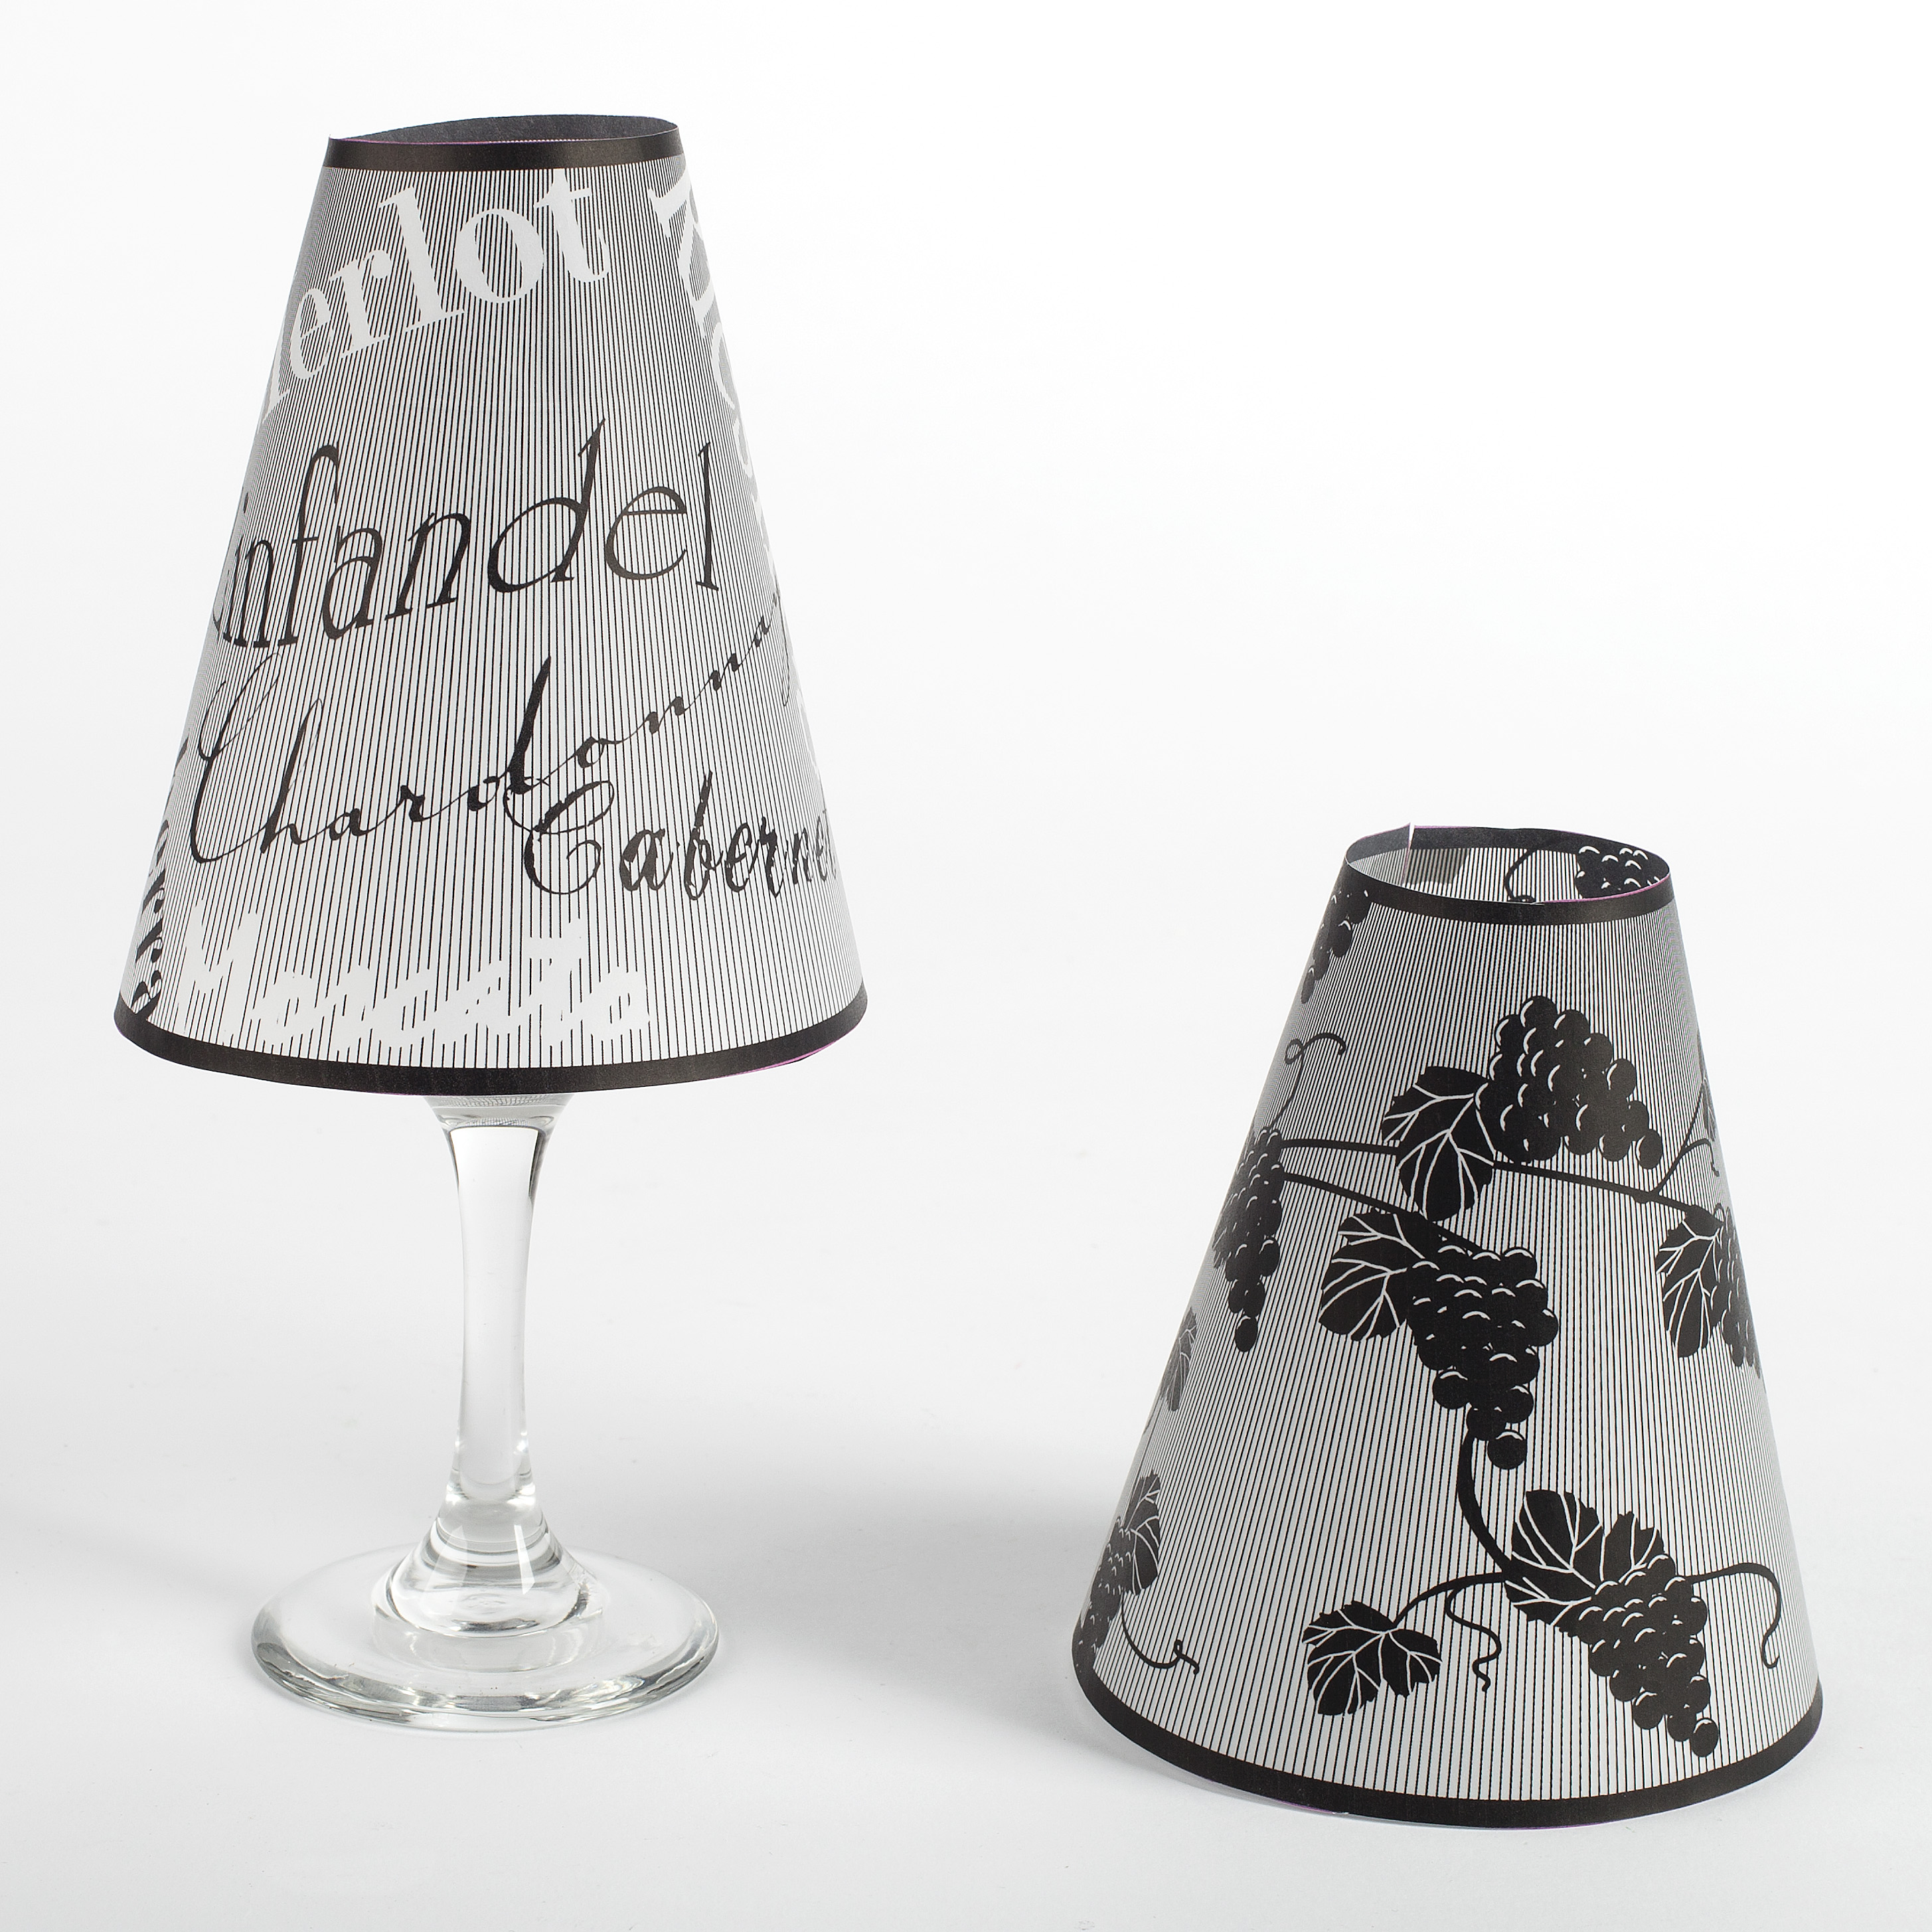 Quot wine lover glass lamp shades tea lights home decor